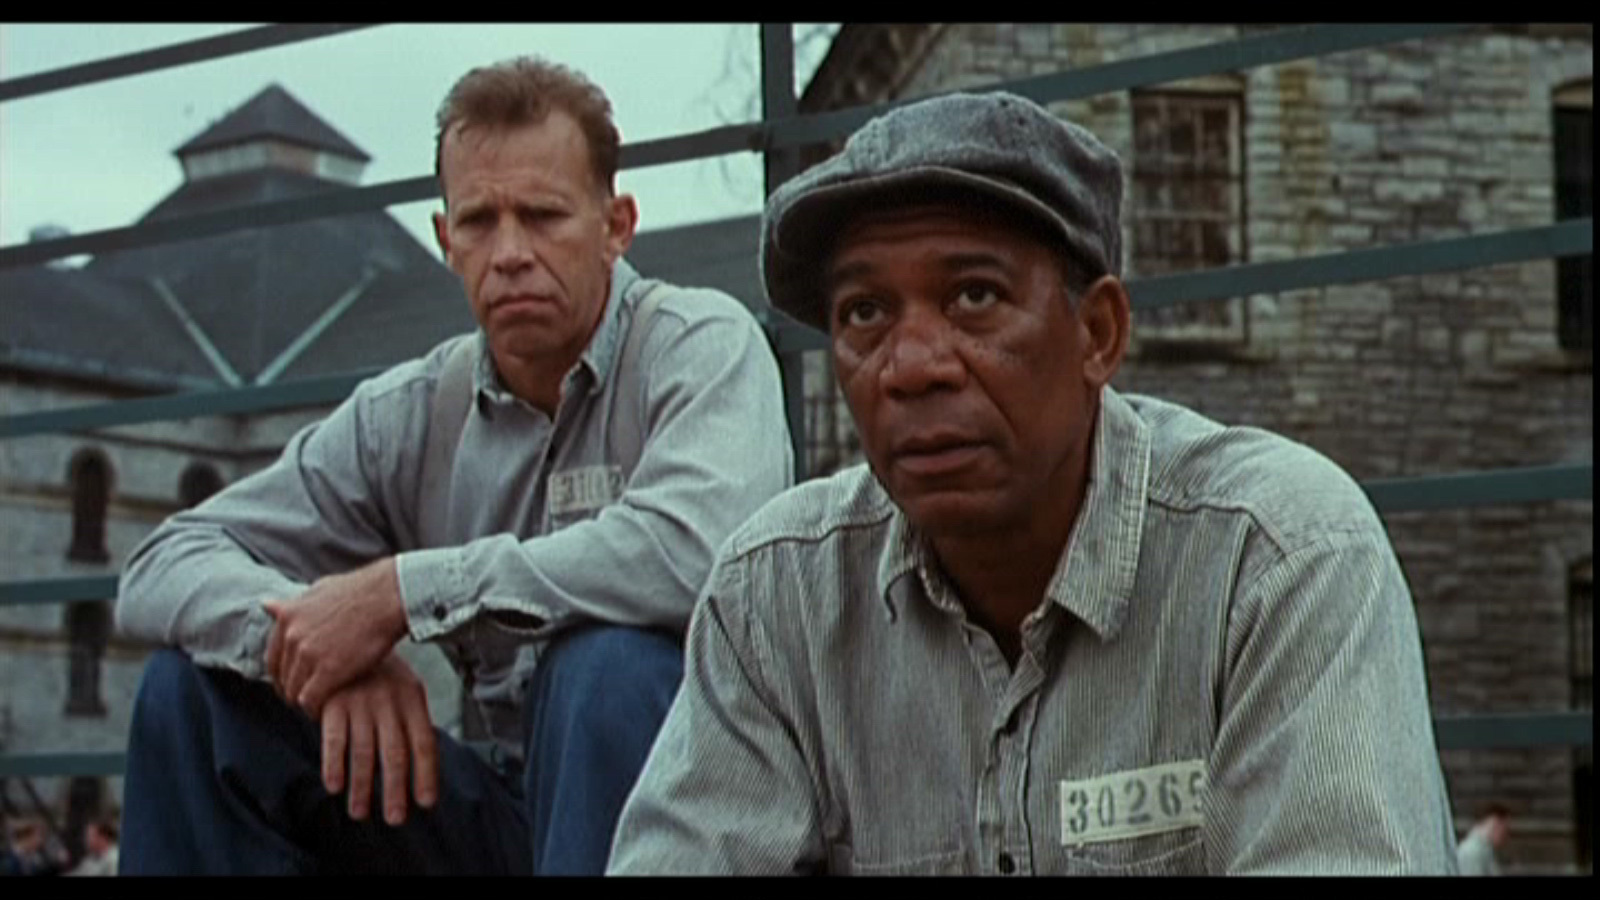 Morgan freeman s narration helps propel the story and also provides